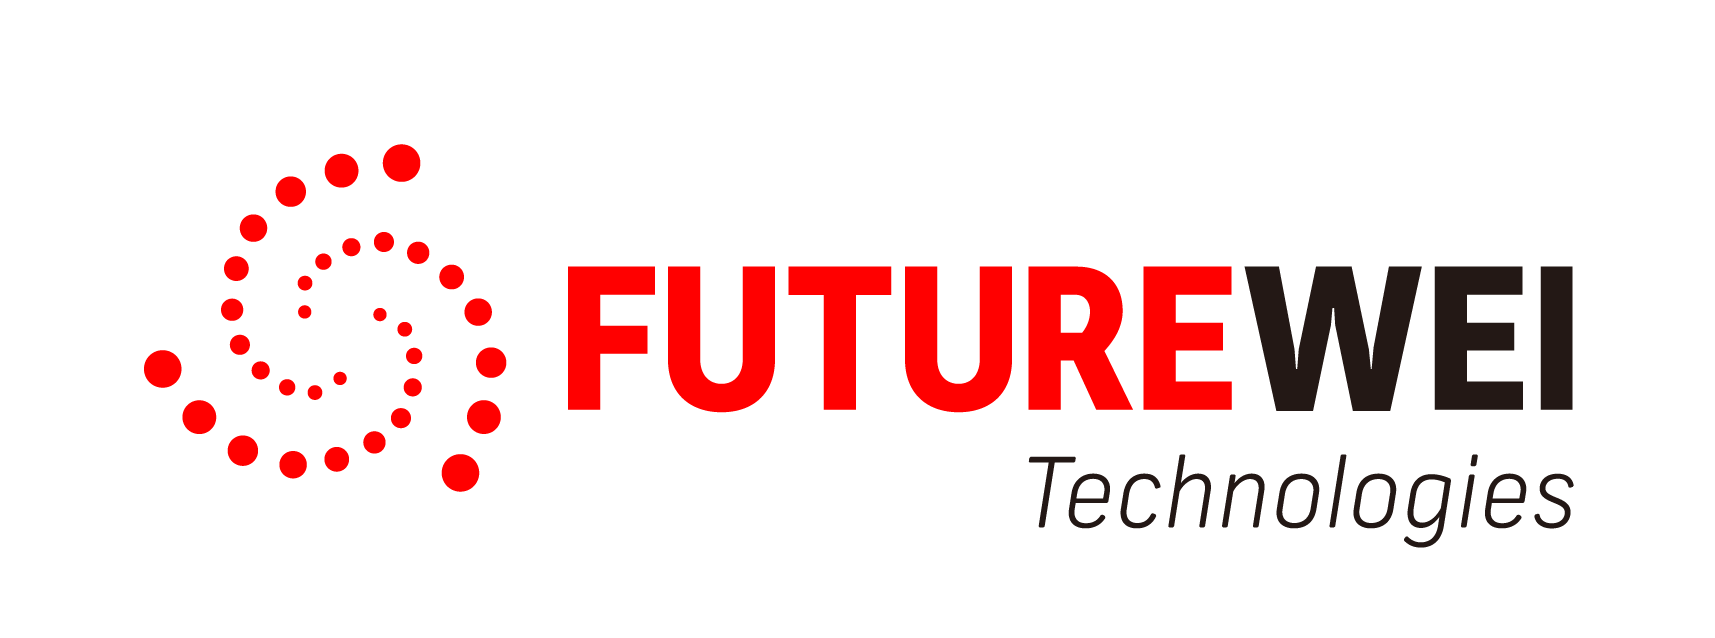 Futurewei Technologies, Inc.